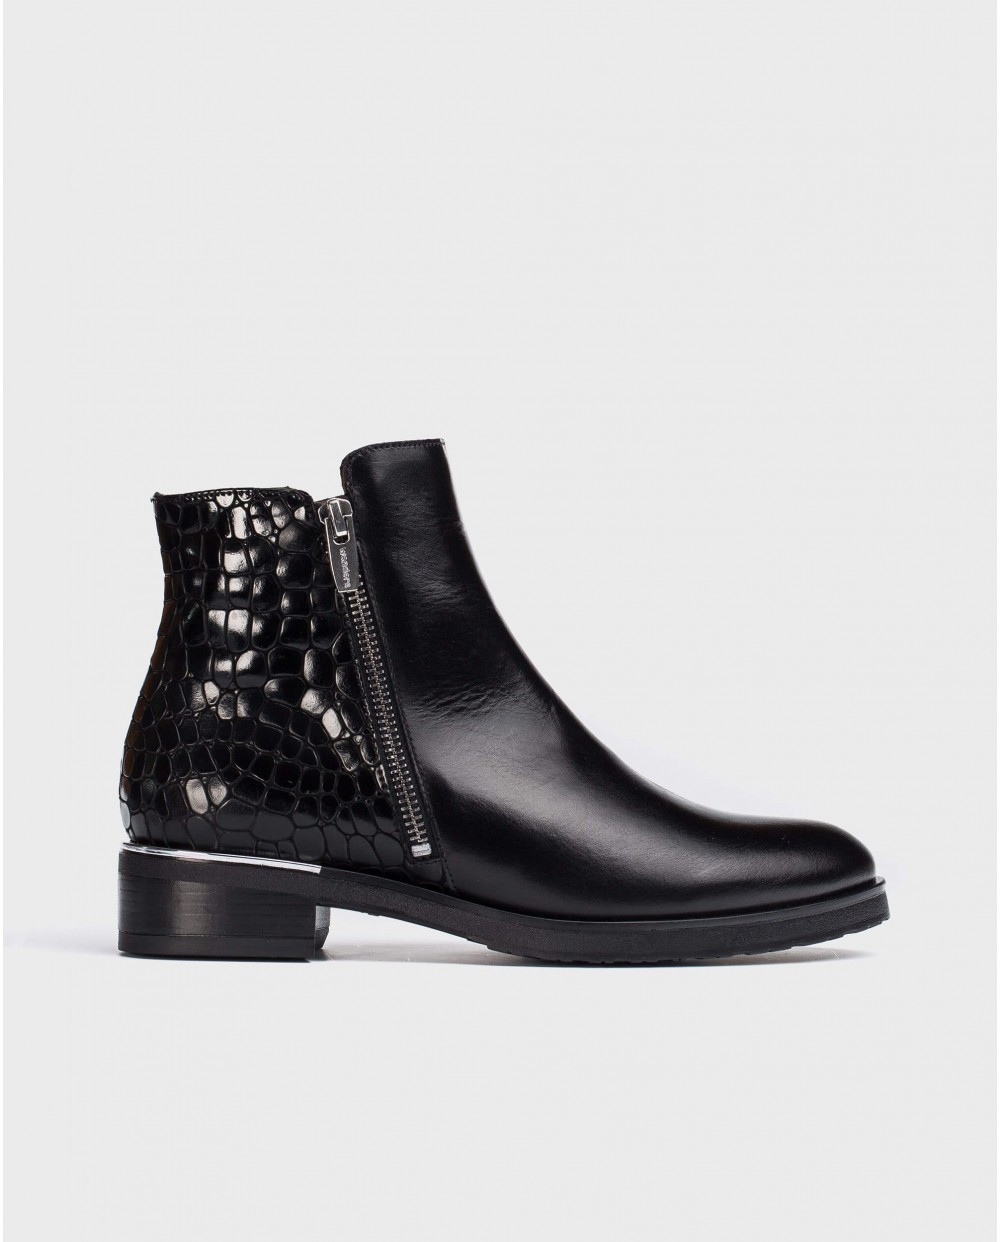 Wonders-Ankle Boots-Black Best Ankle Boot